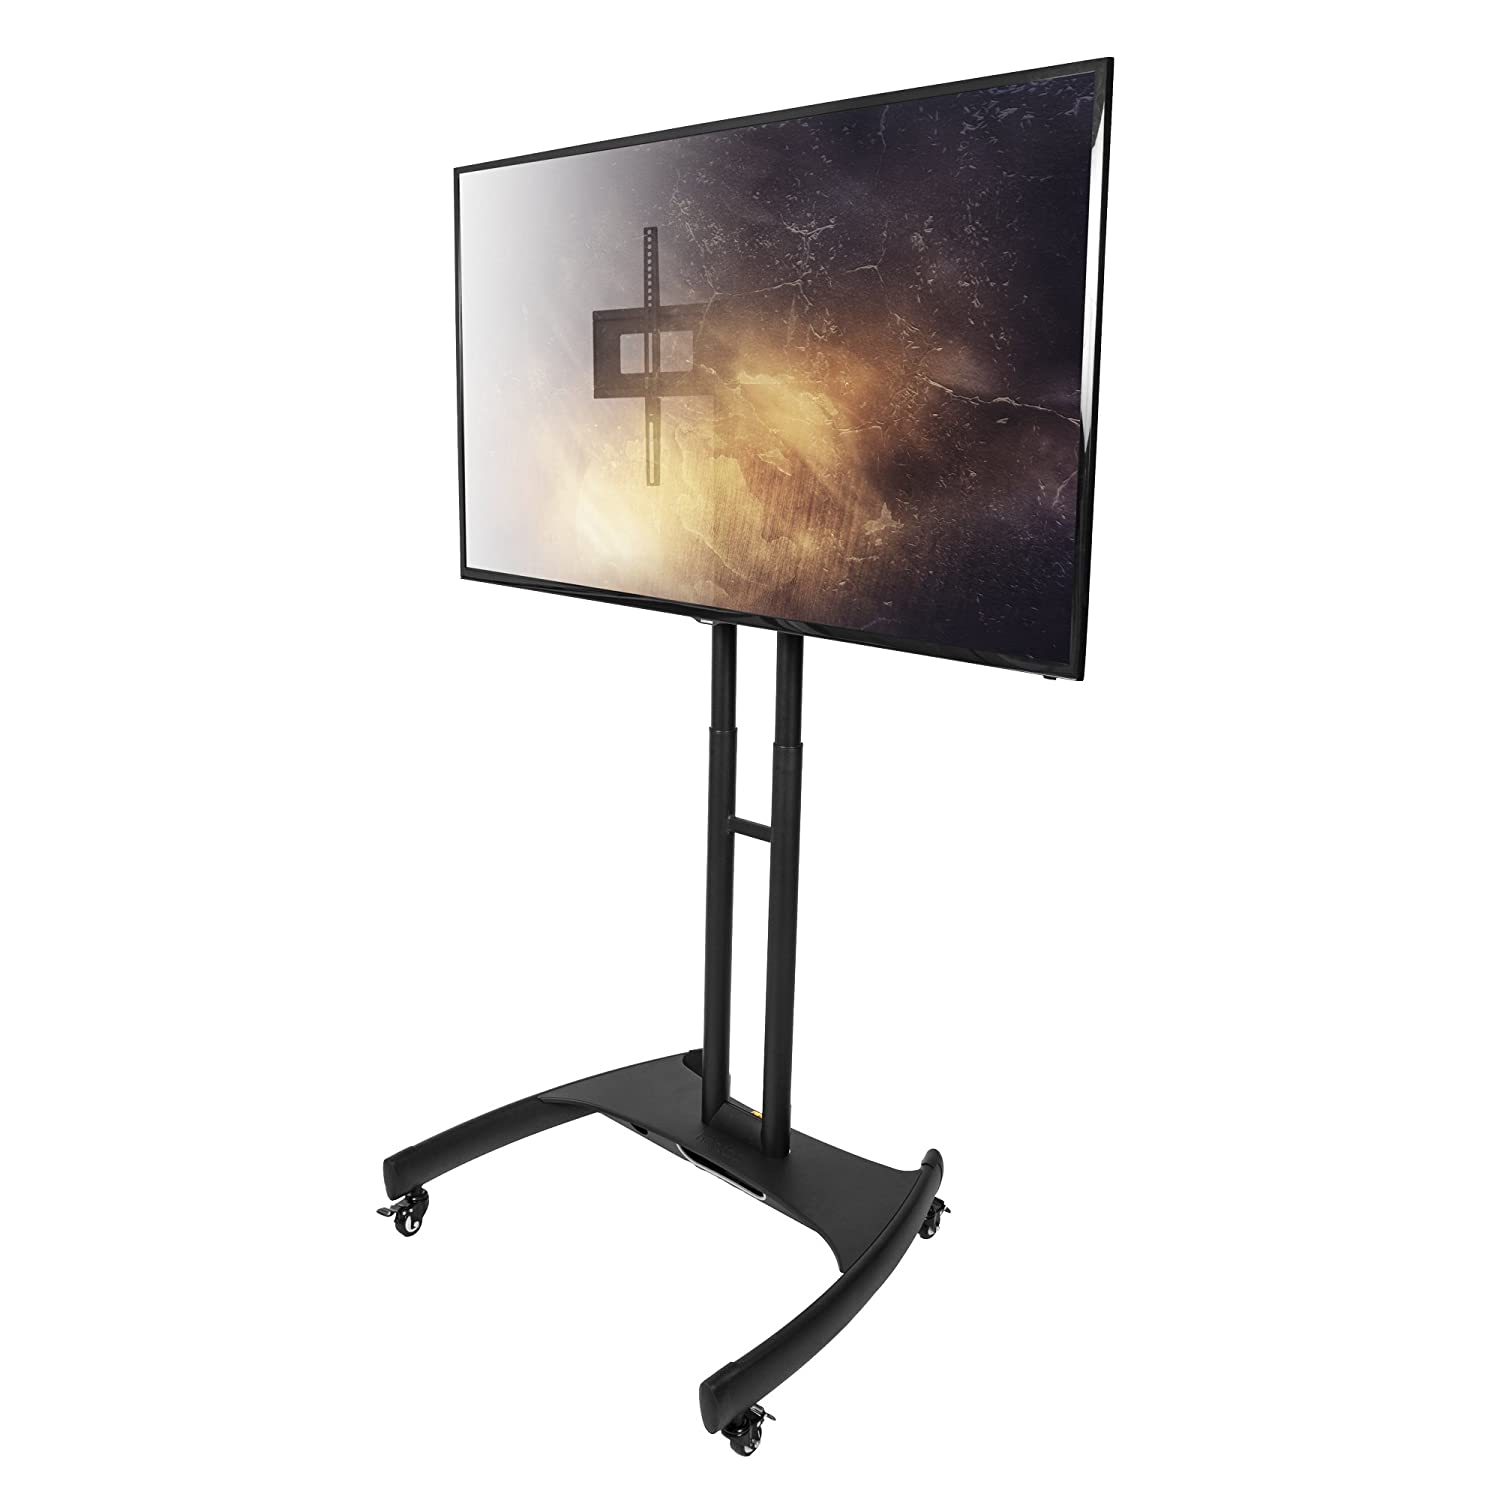 Kanto MTM65 Mobile TV Stand with Mount for 37 to 65 inch Flat Panel Screens Black